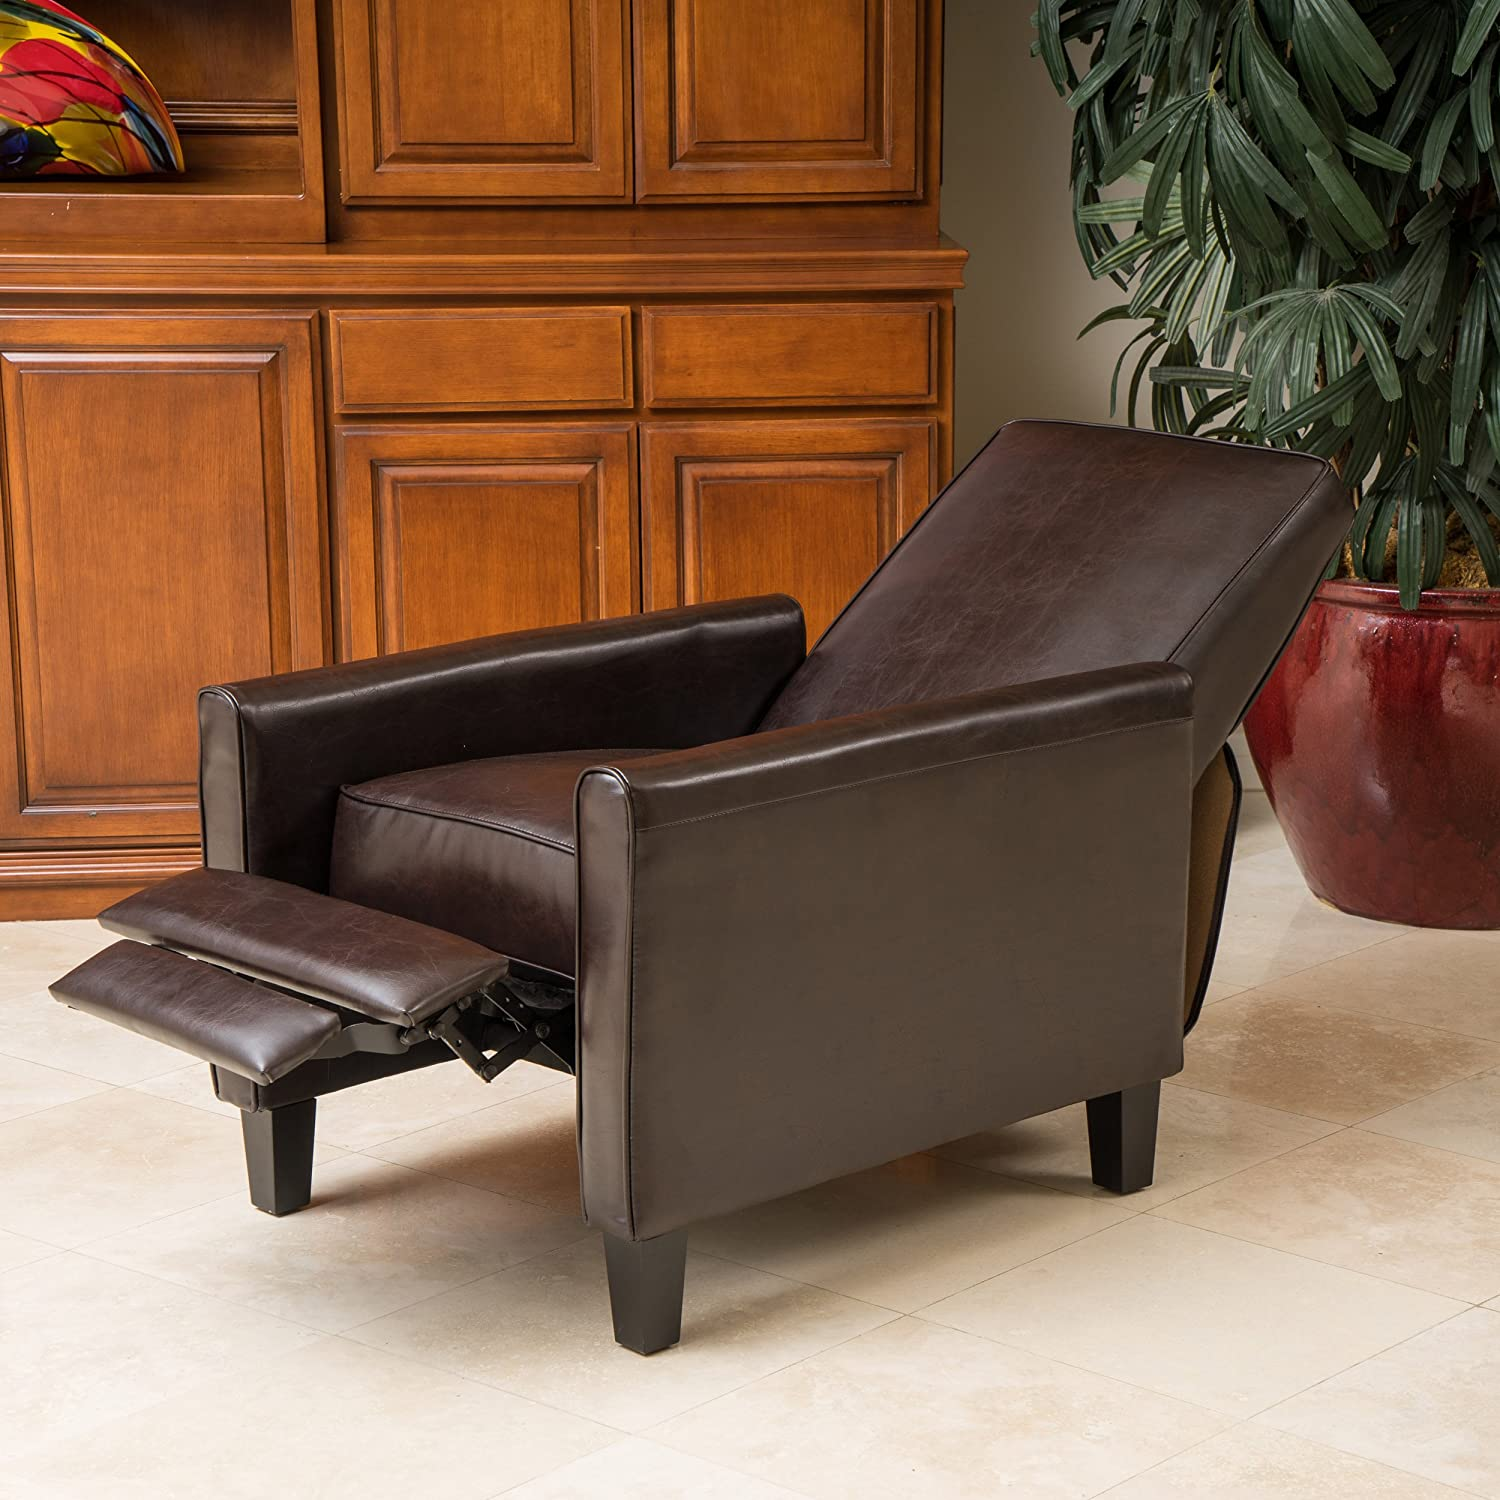 Amazon.com Lucas Brown Leather Modern Sleek Recliner Club Chair Kitchen u0026 Dining : brown leather recliner chairs - islam-shia.org